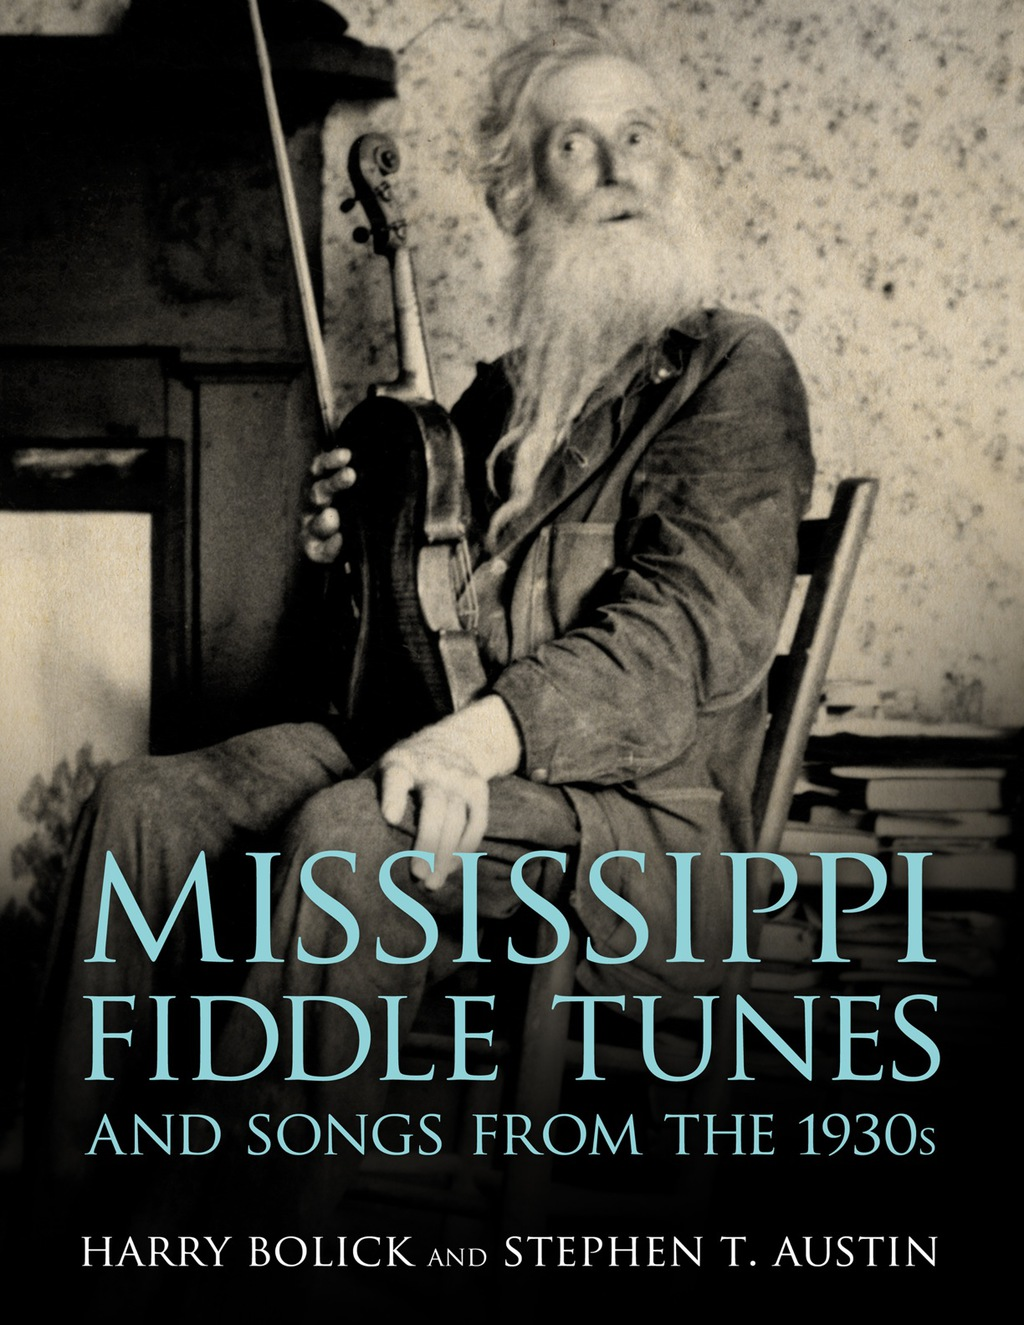 Mississippi Fiddle Tunes and Songs from the 1930s (eBook)